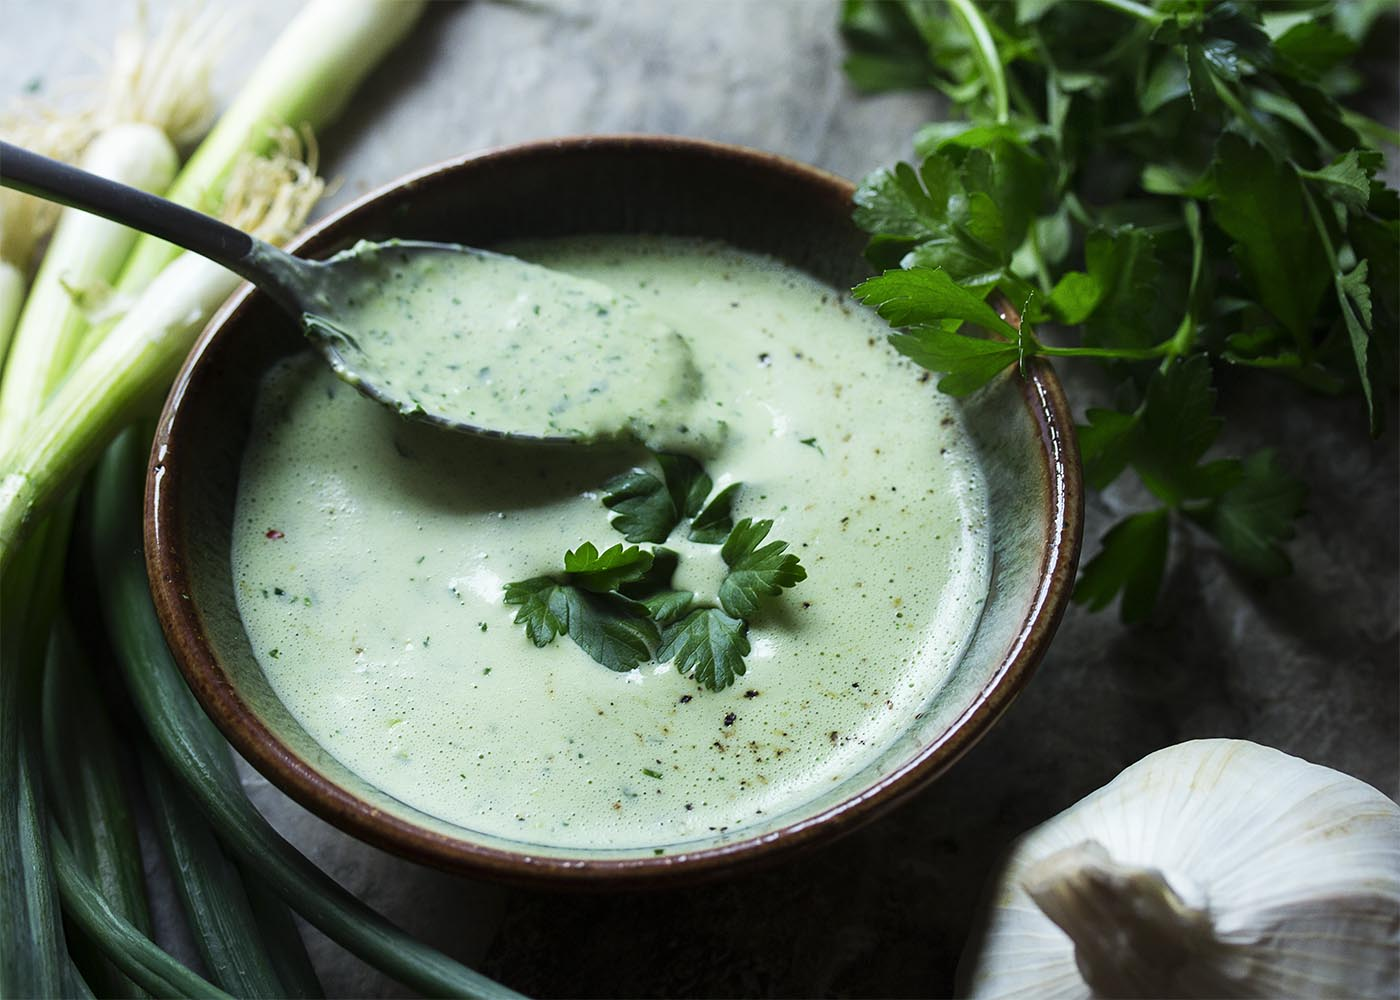 Jalapenos and scallions give this versatile green goddess buttermilk dressing a little kick and buttermilk gives it a great tang. Use it as a dressing for salads, a sauce for seafood and chicken, or as a dip! | justalittlebitofbacon.com